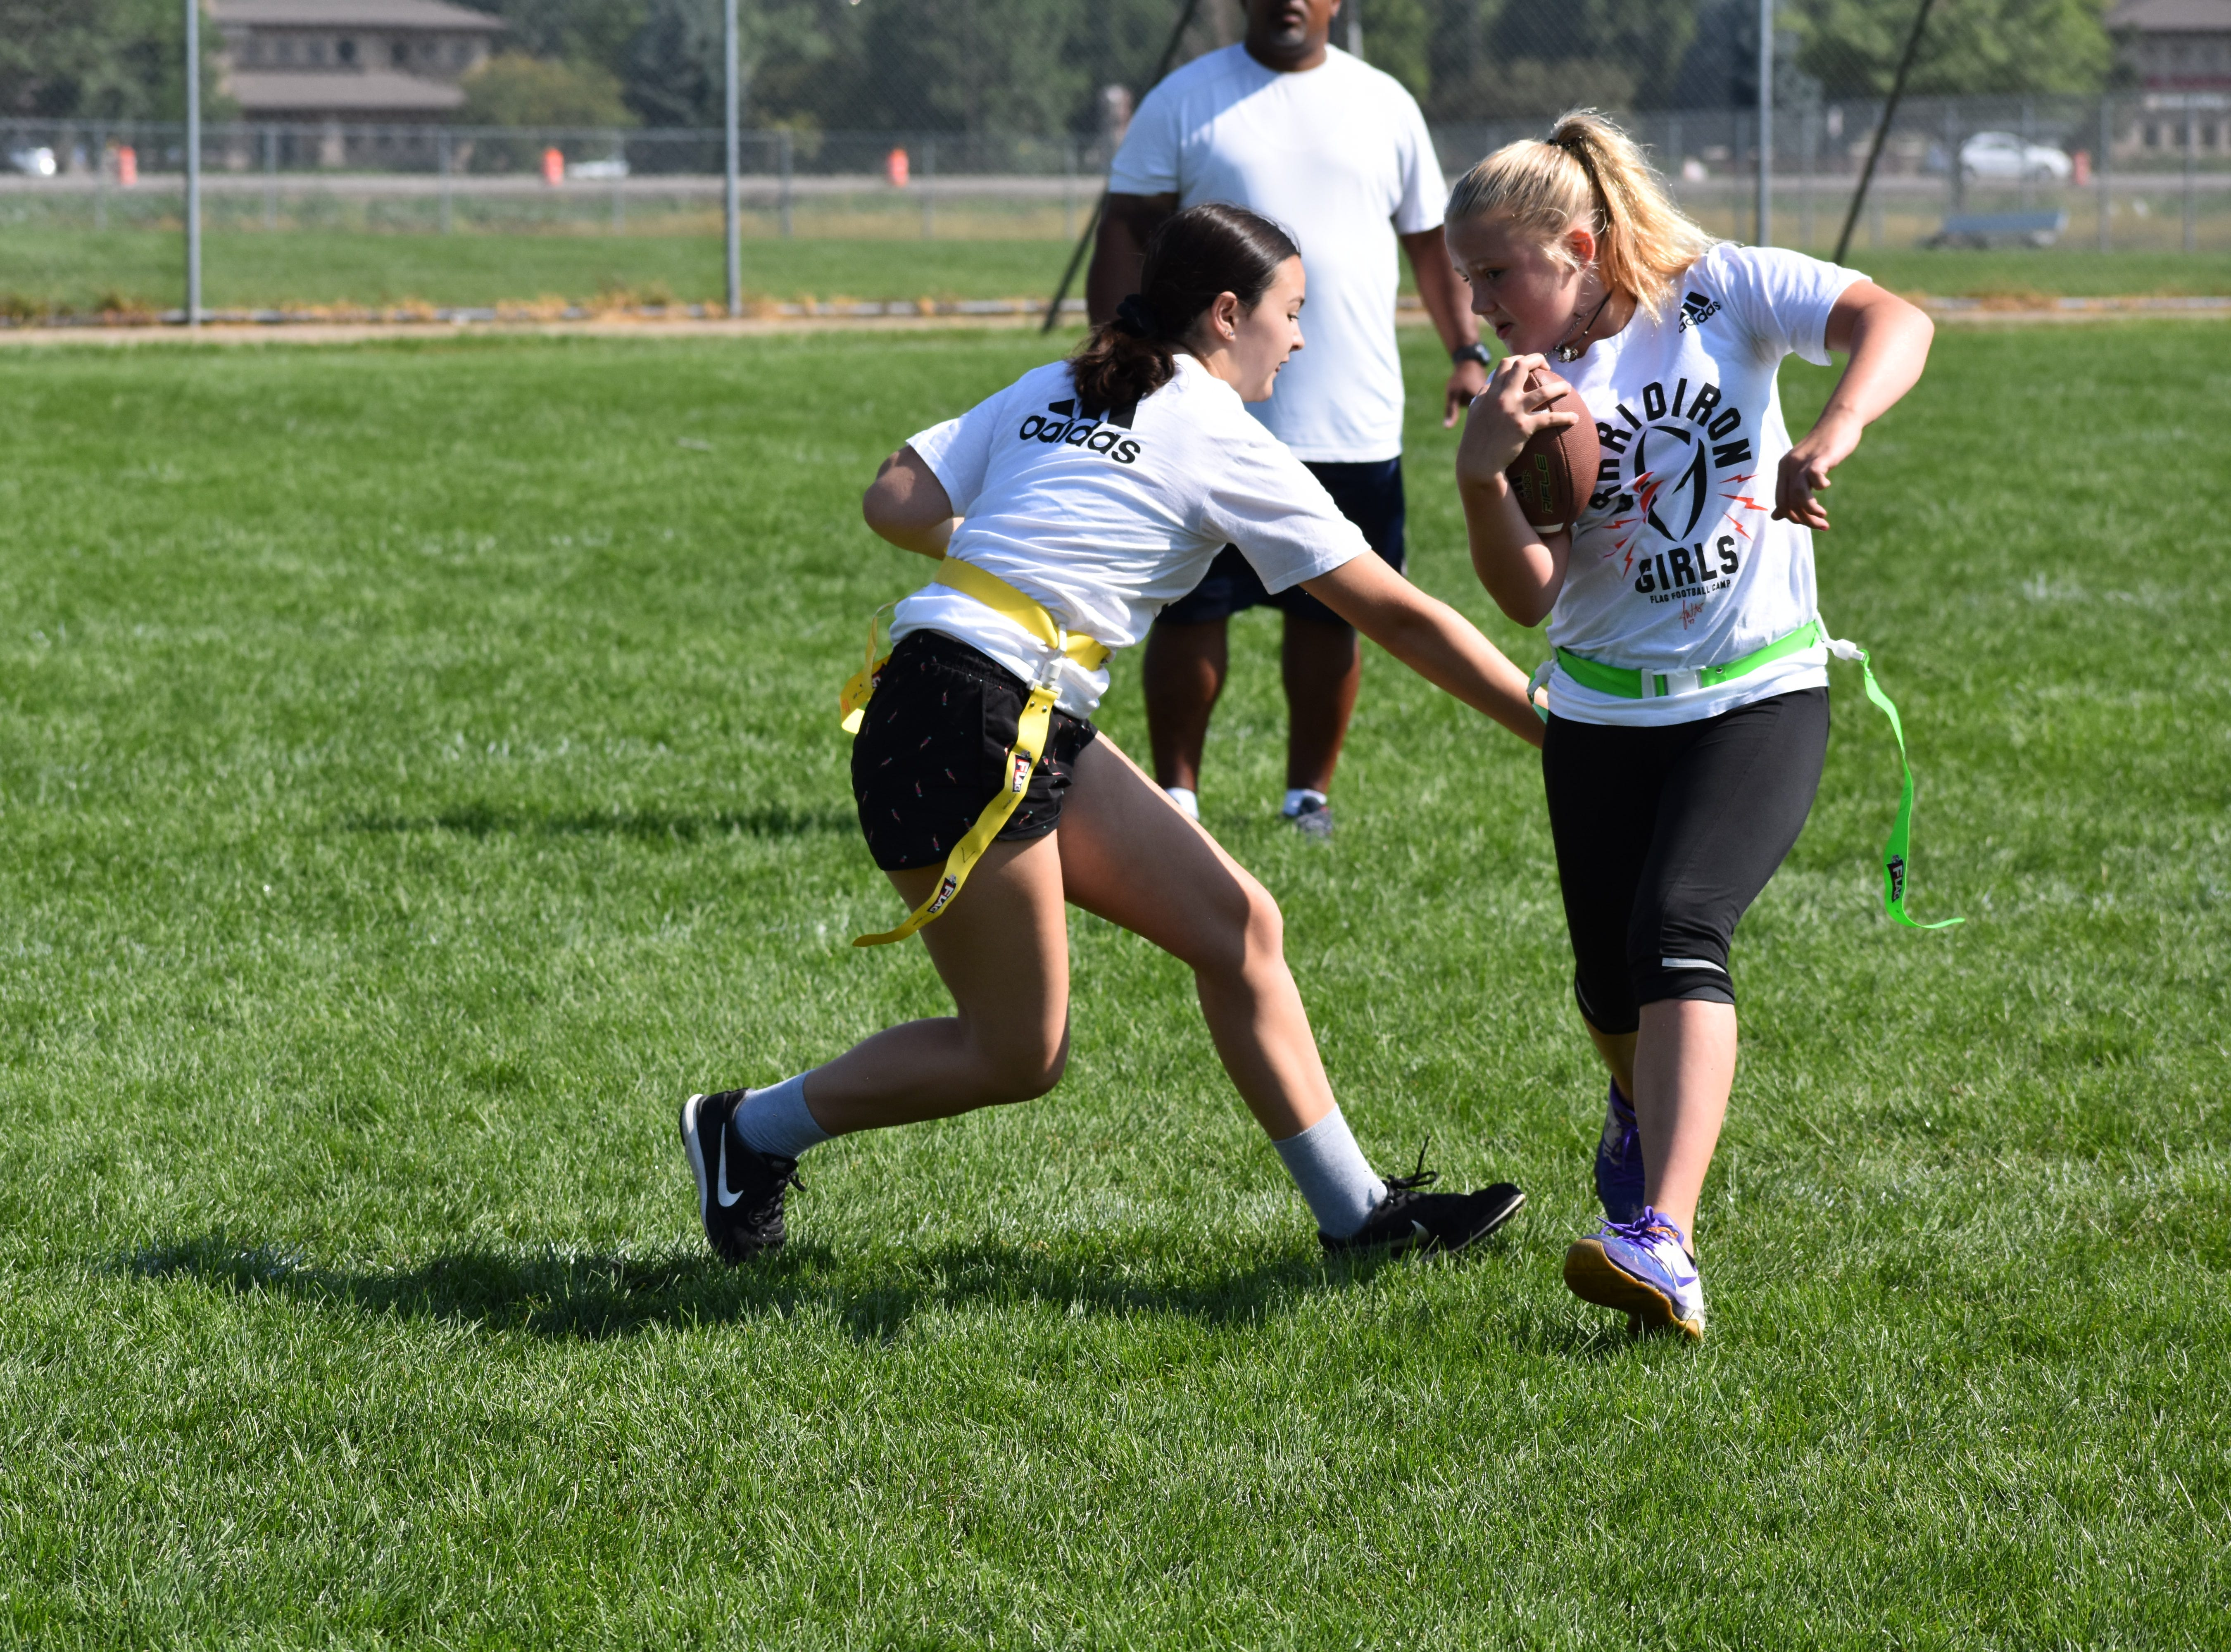 Jen Welter, the NFL's first female assistant coach, provides instruction Sunday at a Grrridiron Girls Flag Football Camp at Mountain View High School in Loveland. Anthony Stone, a high school football coach in Illinois, and players and coaches from the Denver Blaze women's football team helped run the camp.